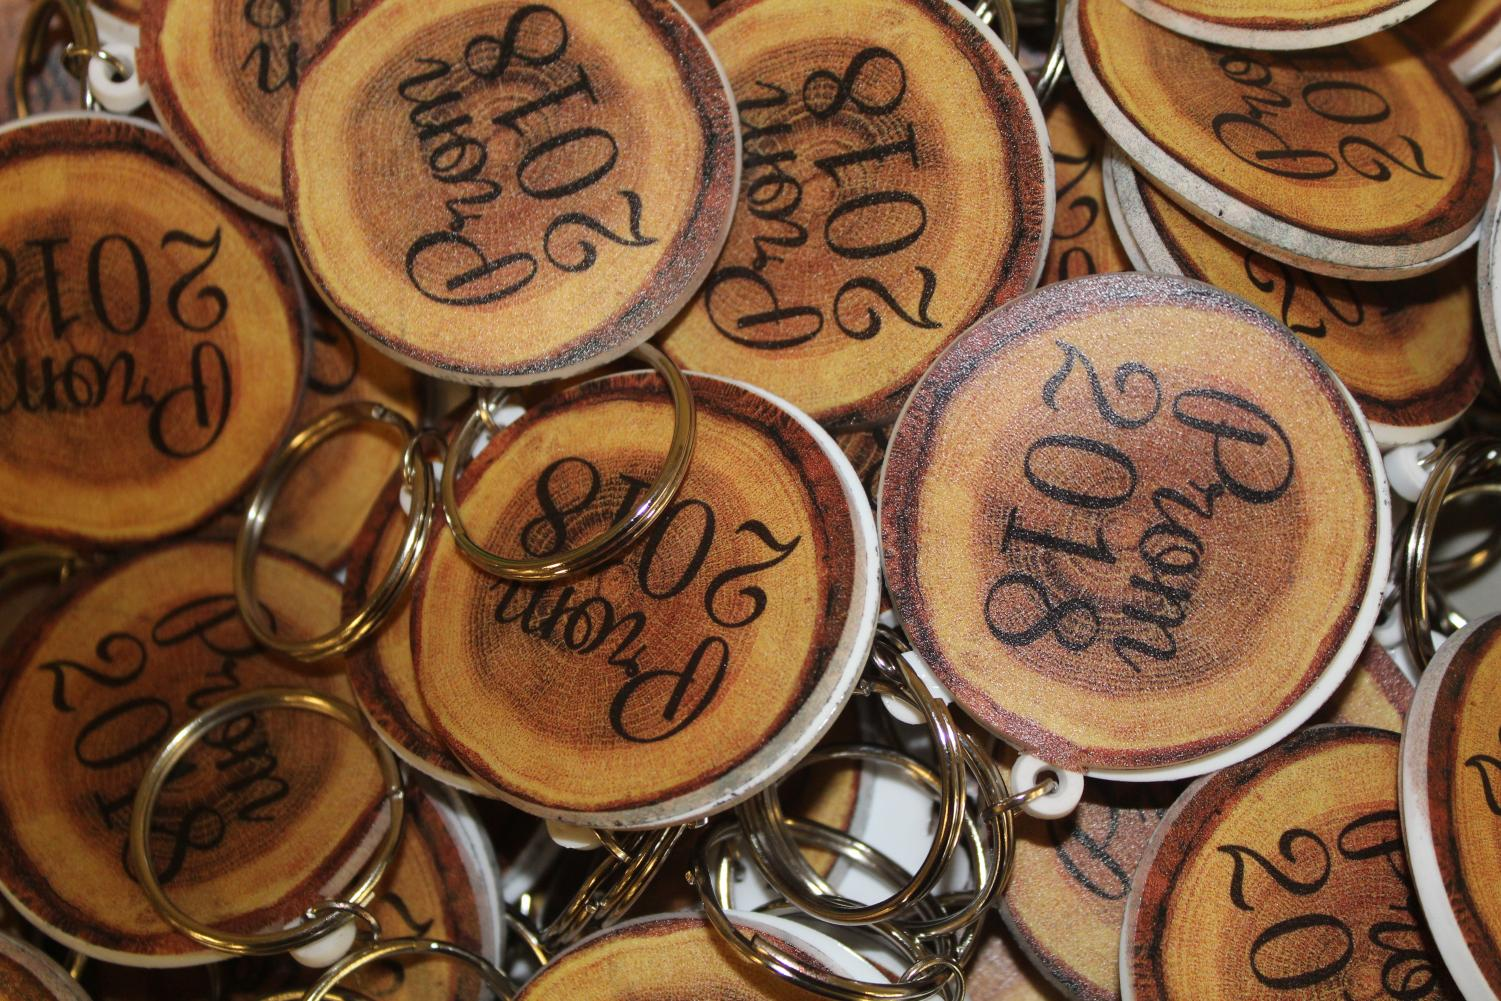 This year's Prom tickets are rubber keychains that look like wood to represent the